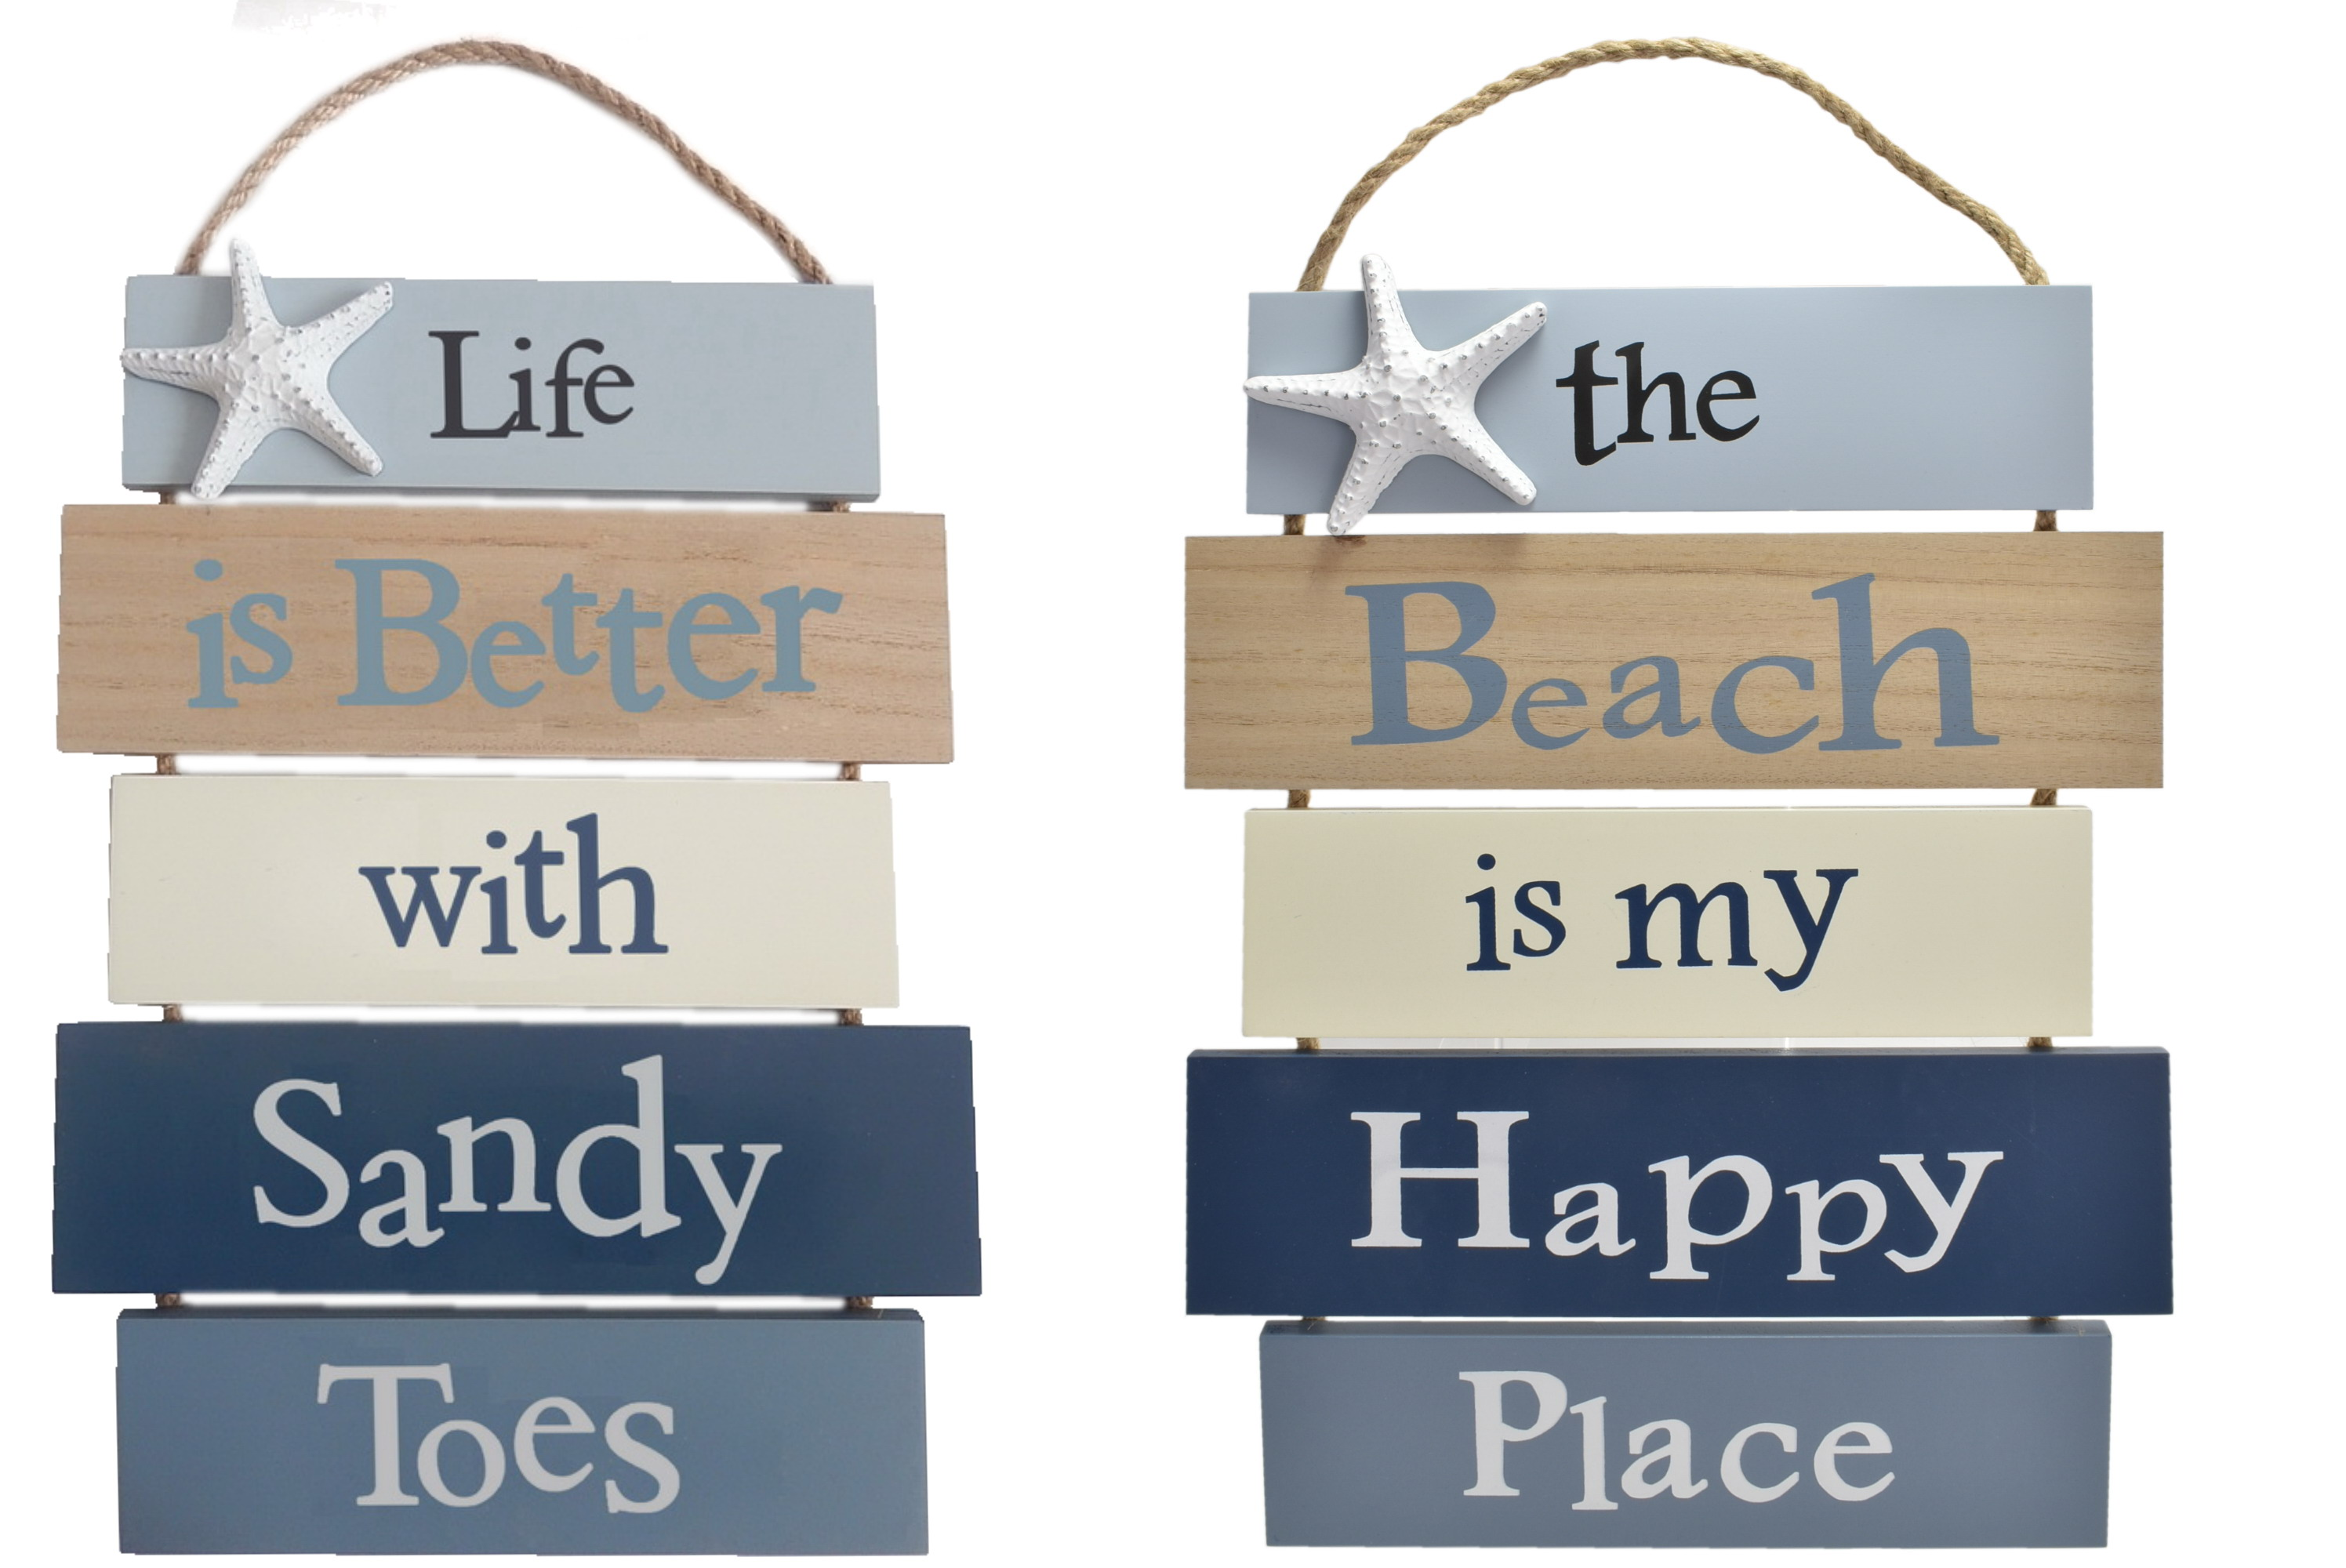 51x30cm 5pc Wooden Hanging Sign 2 Assorted Designs